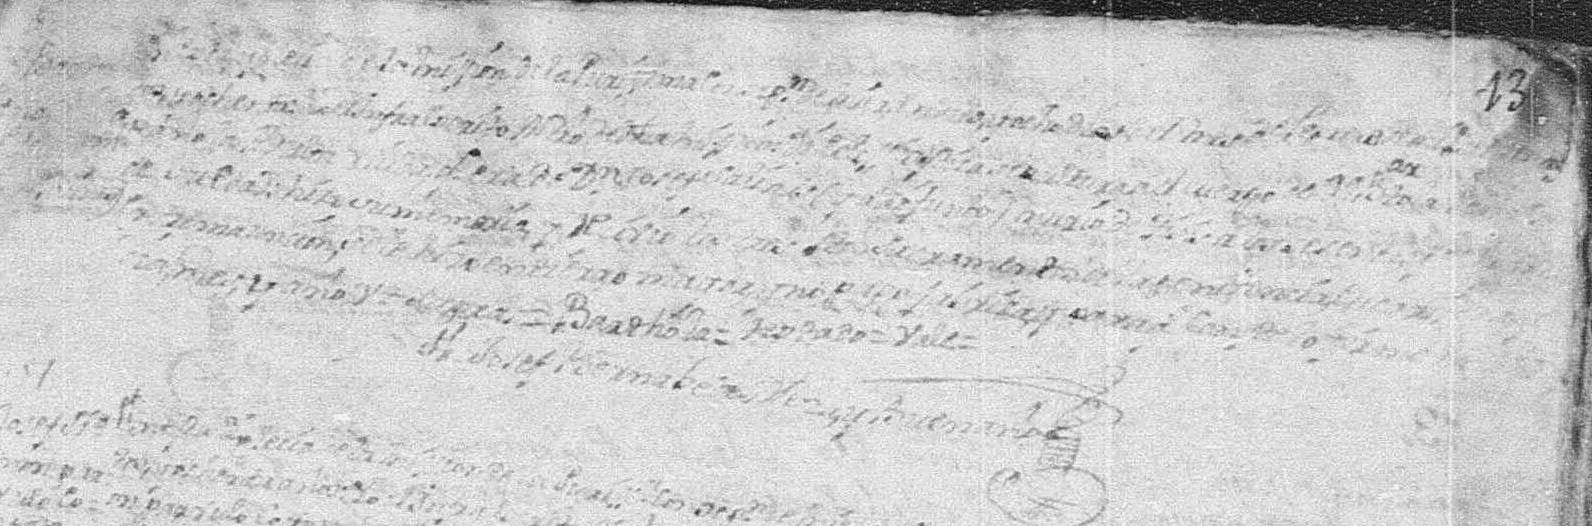 1780 Church Death Record of Maria Bartola Pena in Mier, Tamaulipas, Mexico